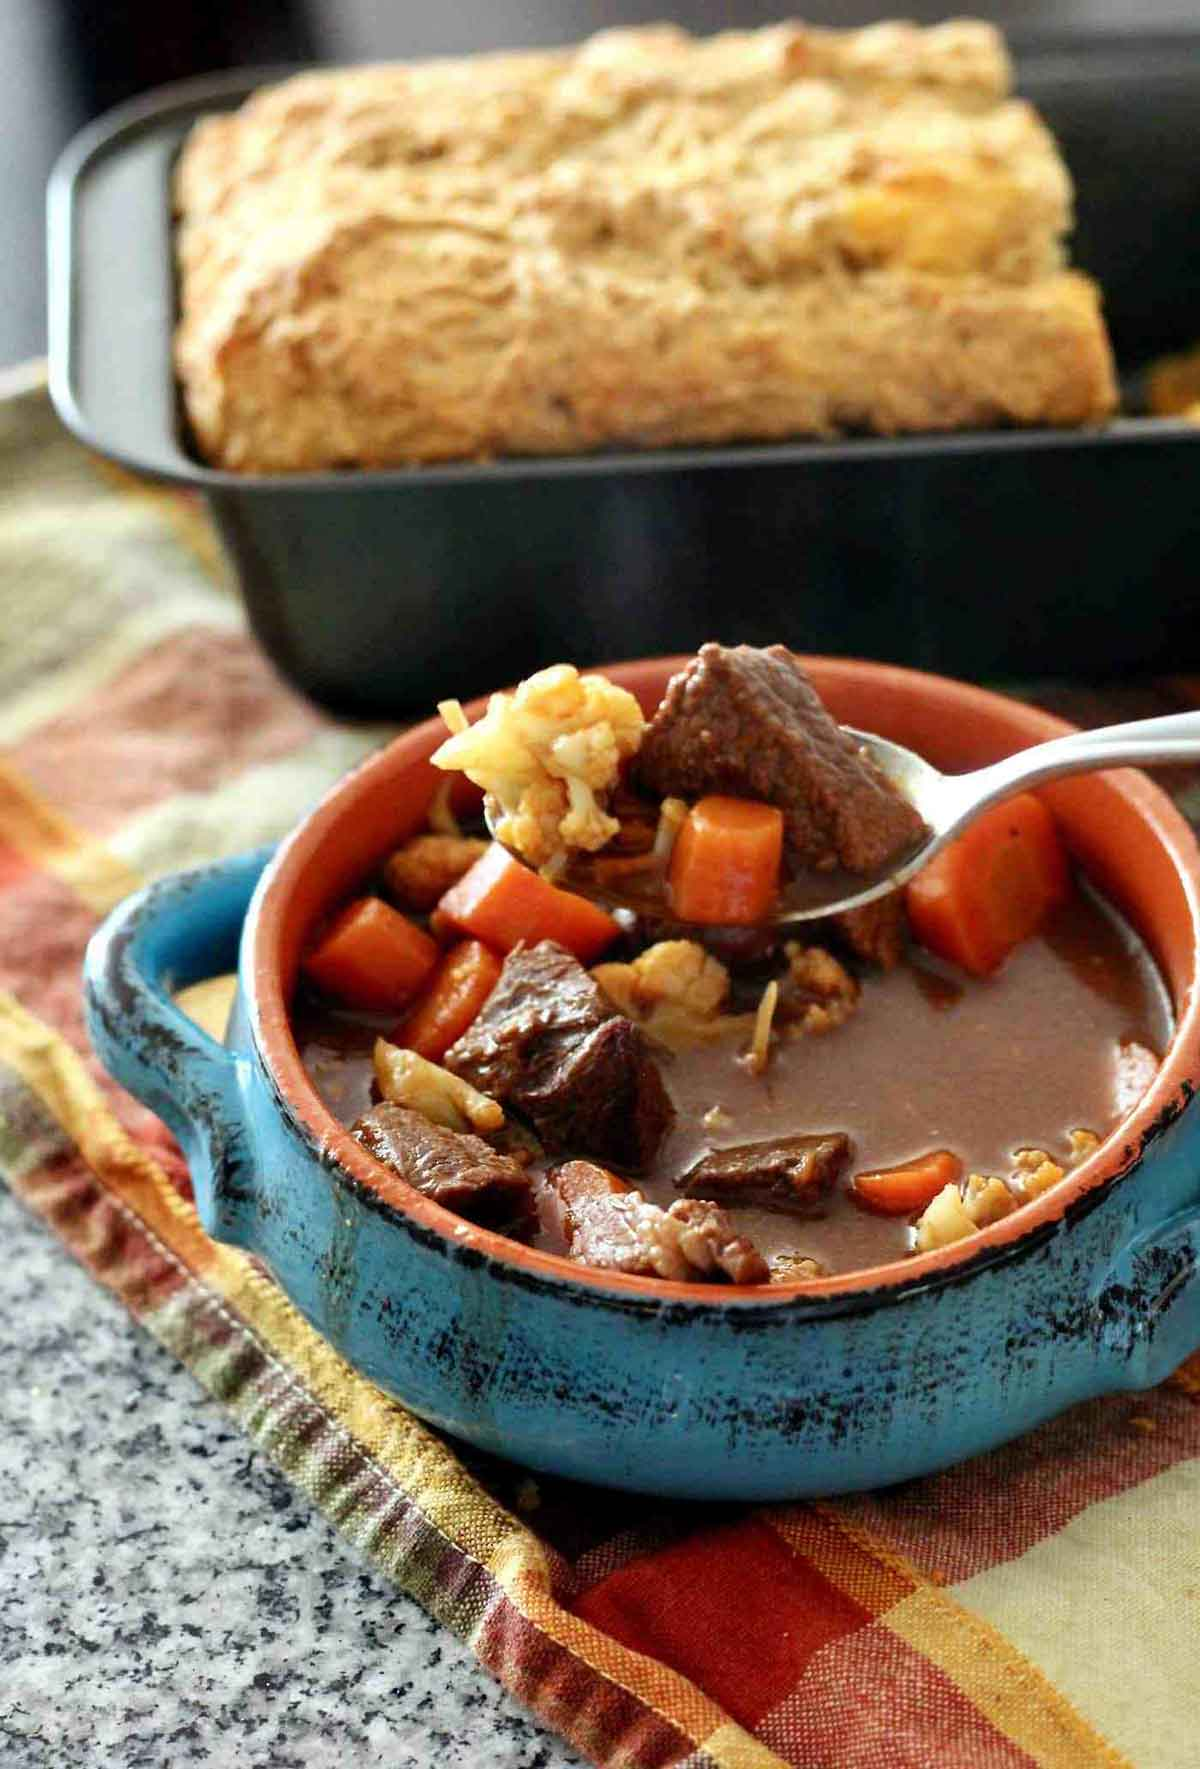 A bowl of beef stew next to a pan of bread.